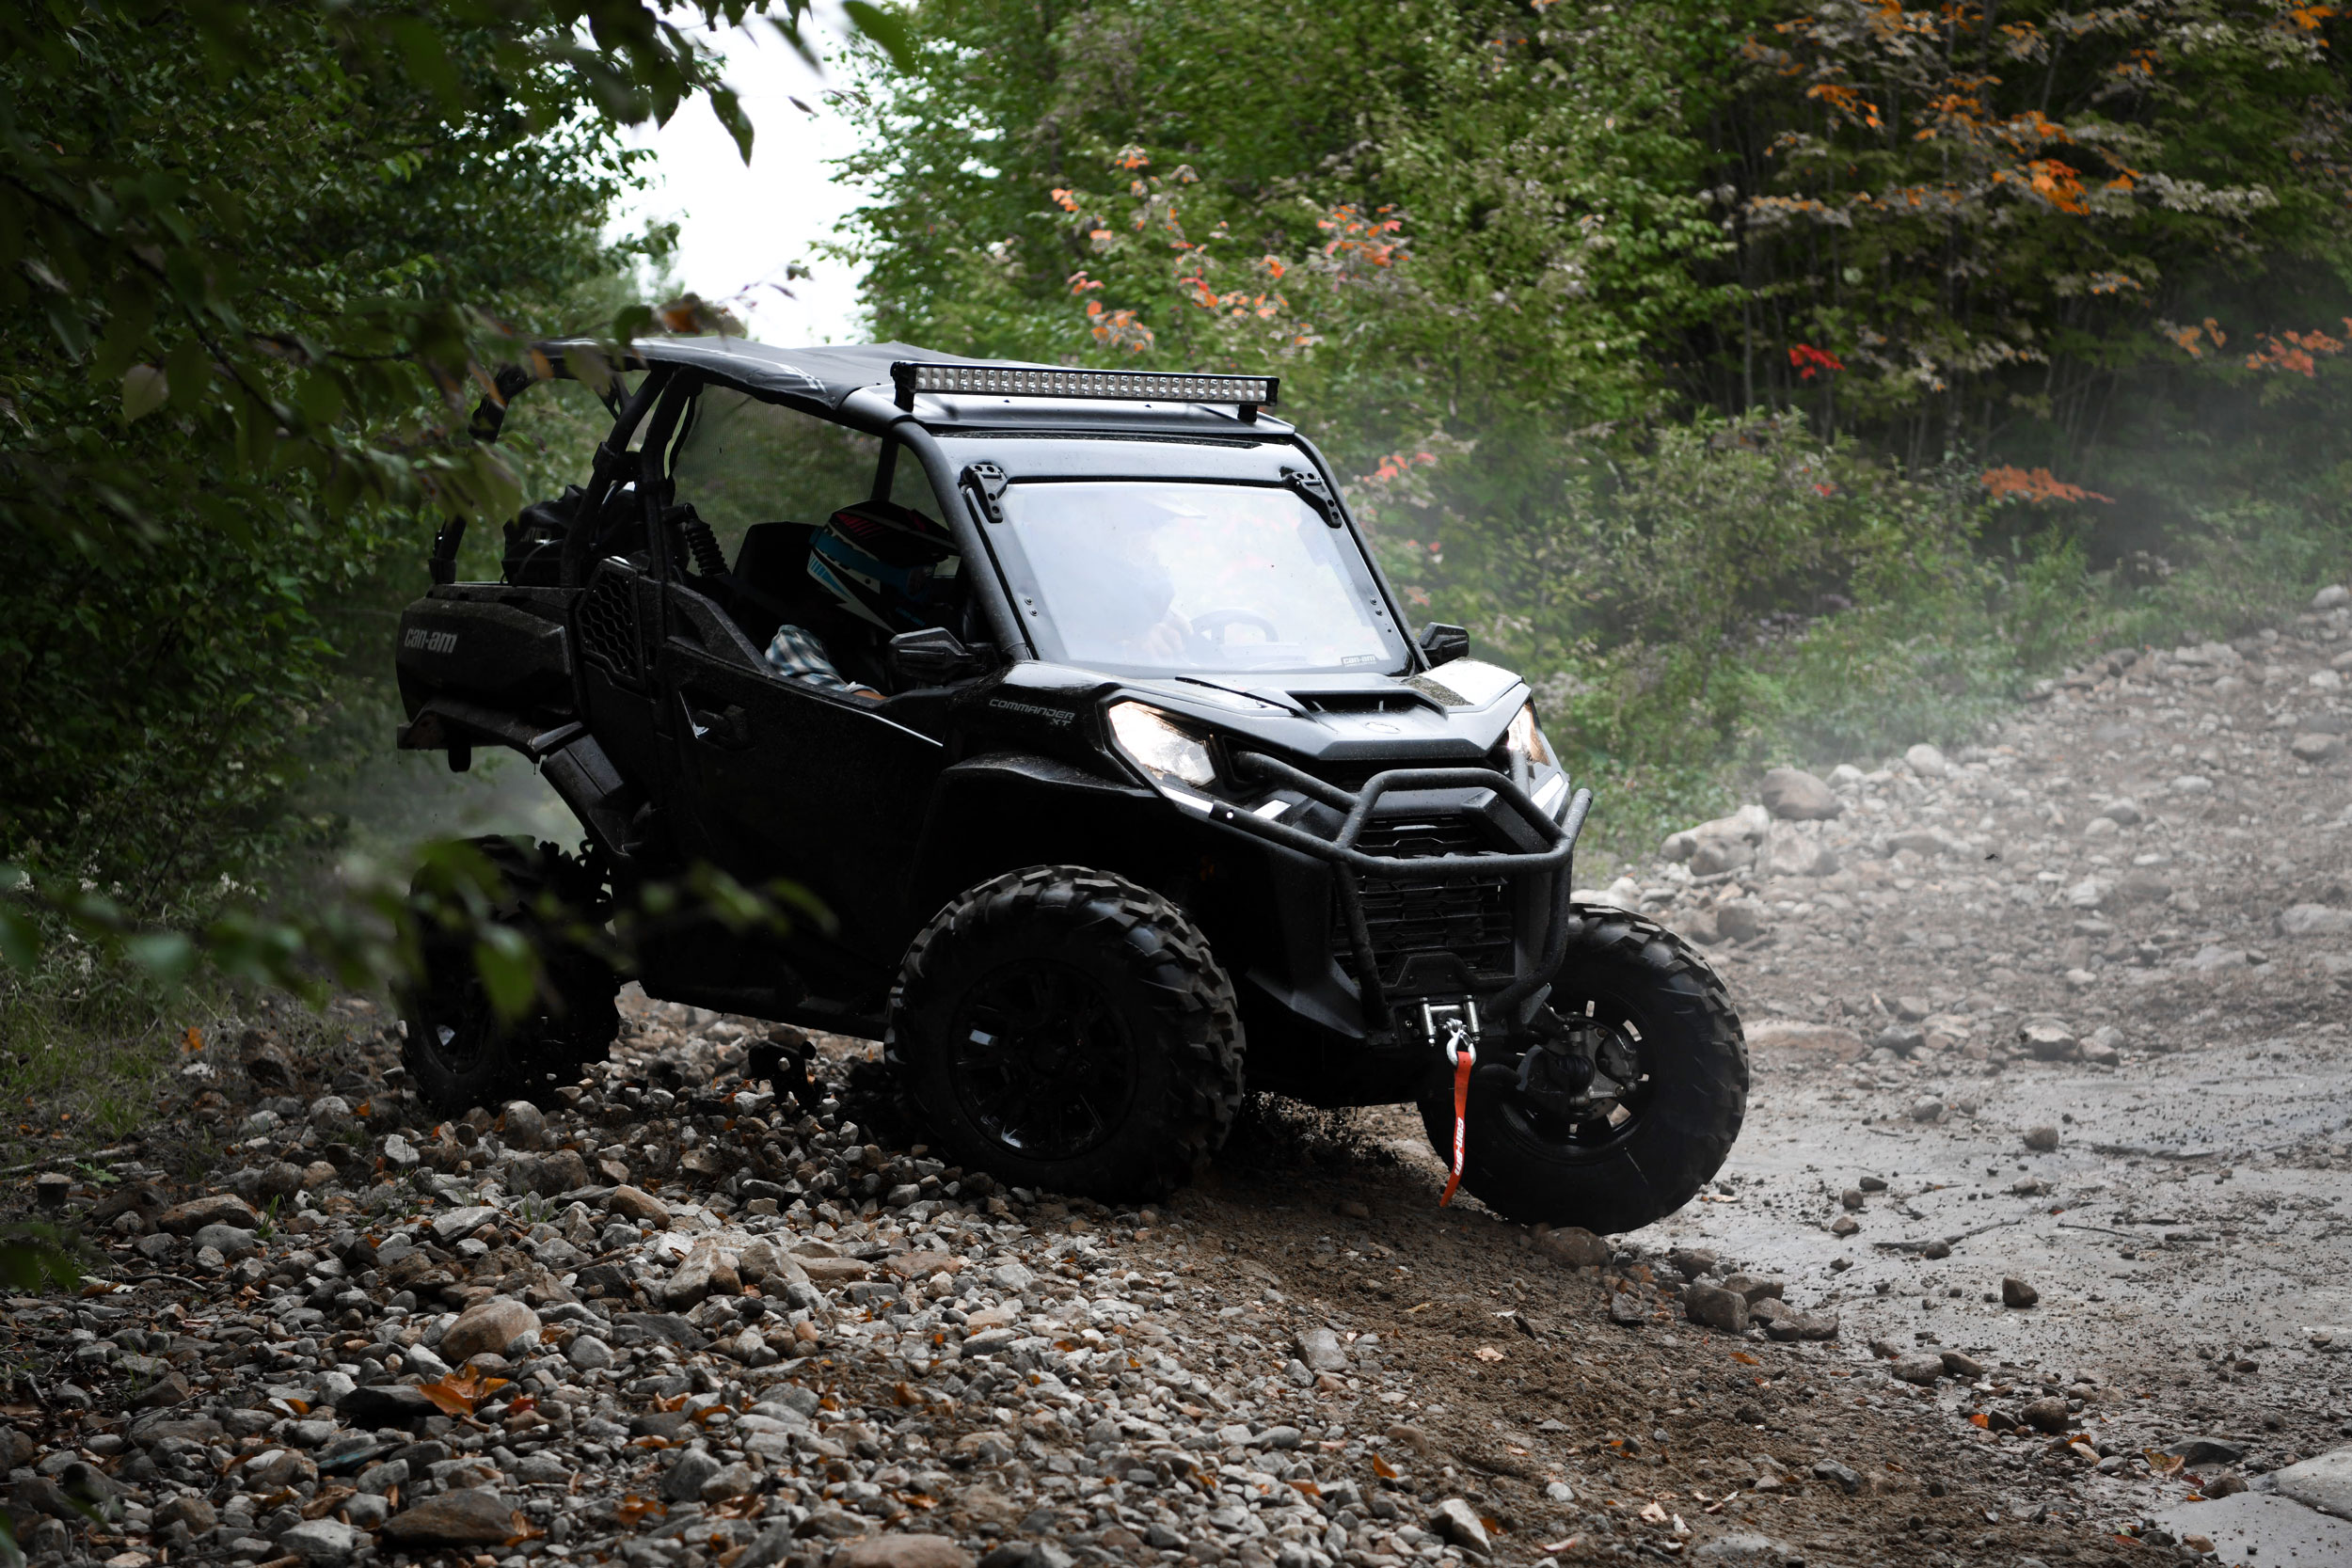 Can-Am Off-Road Commander 2021 Side by side vehicle power engine rotax cottage life and trail adventure